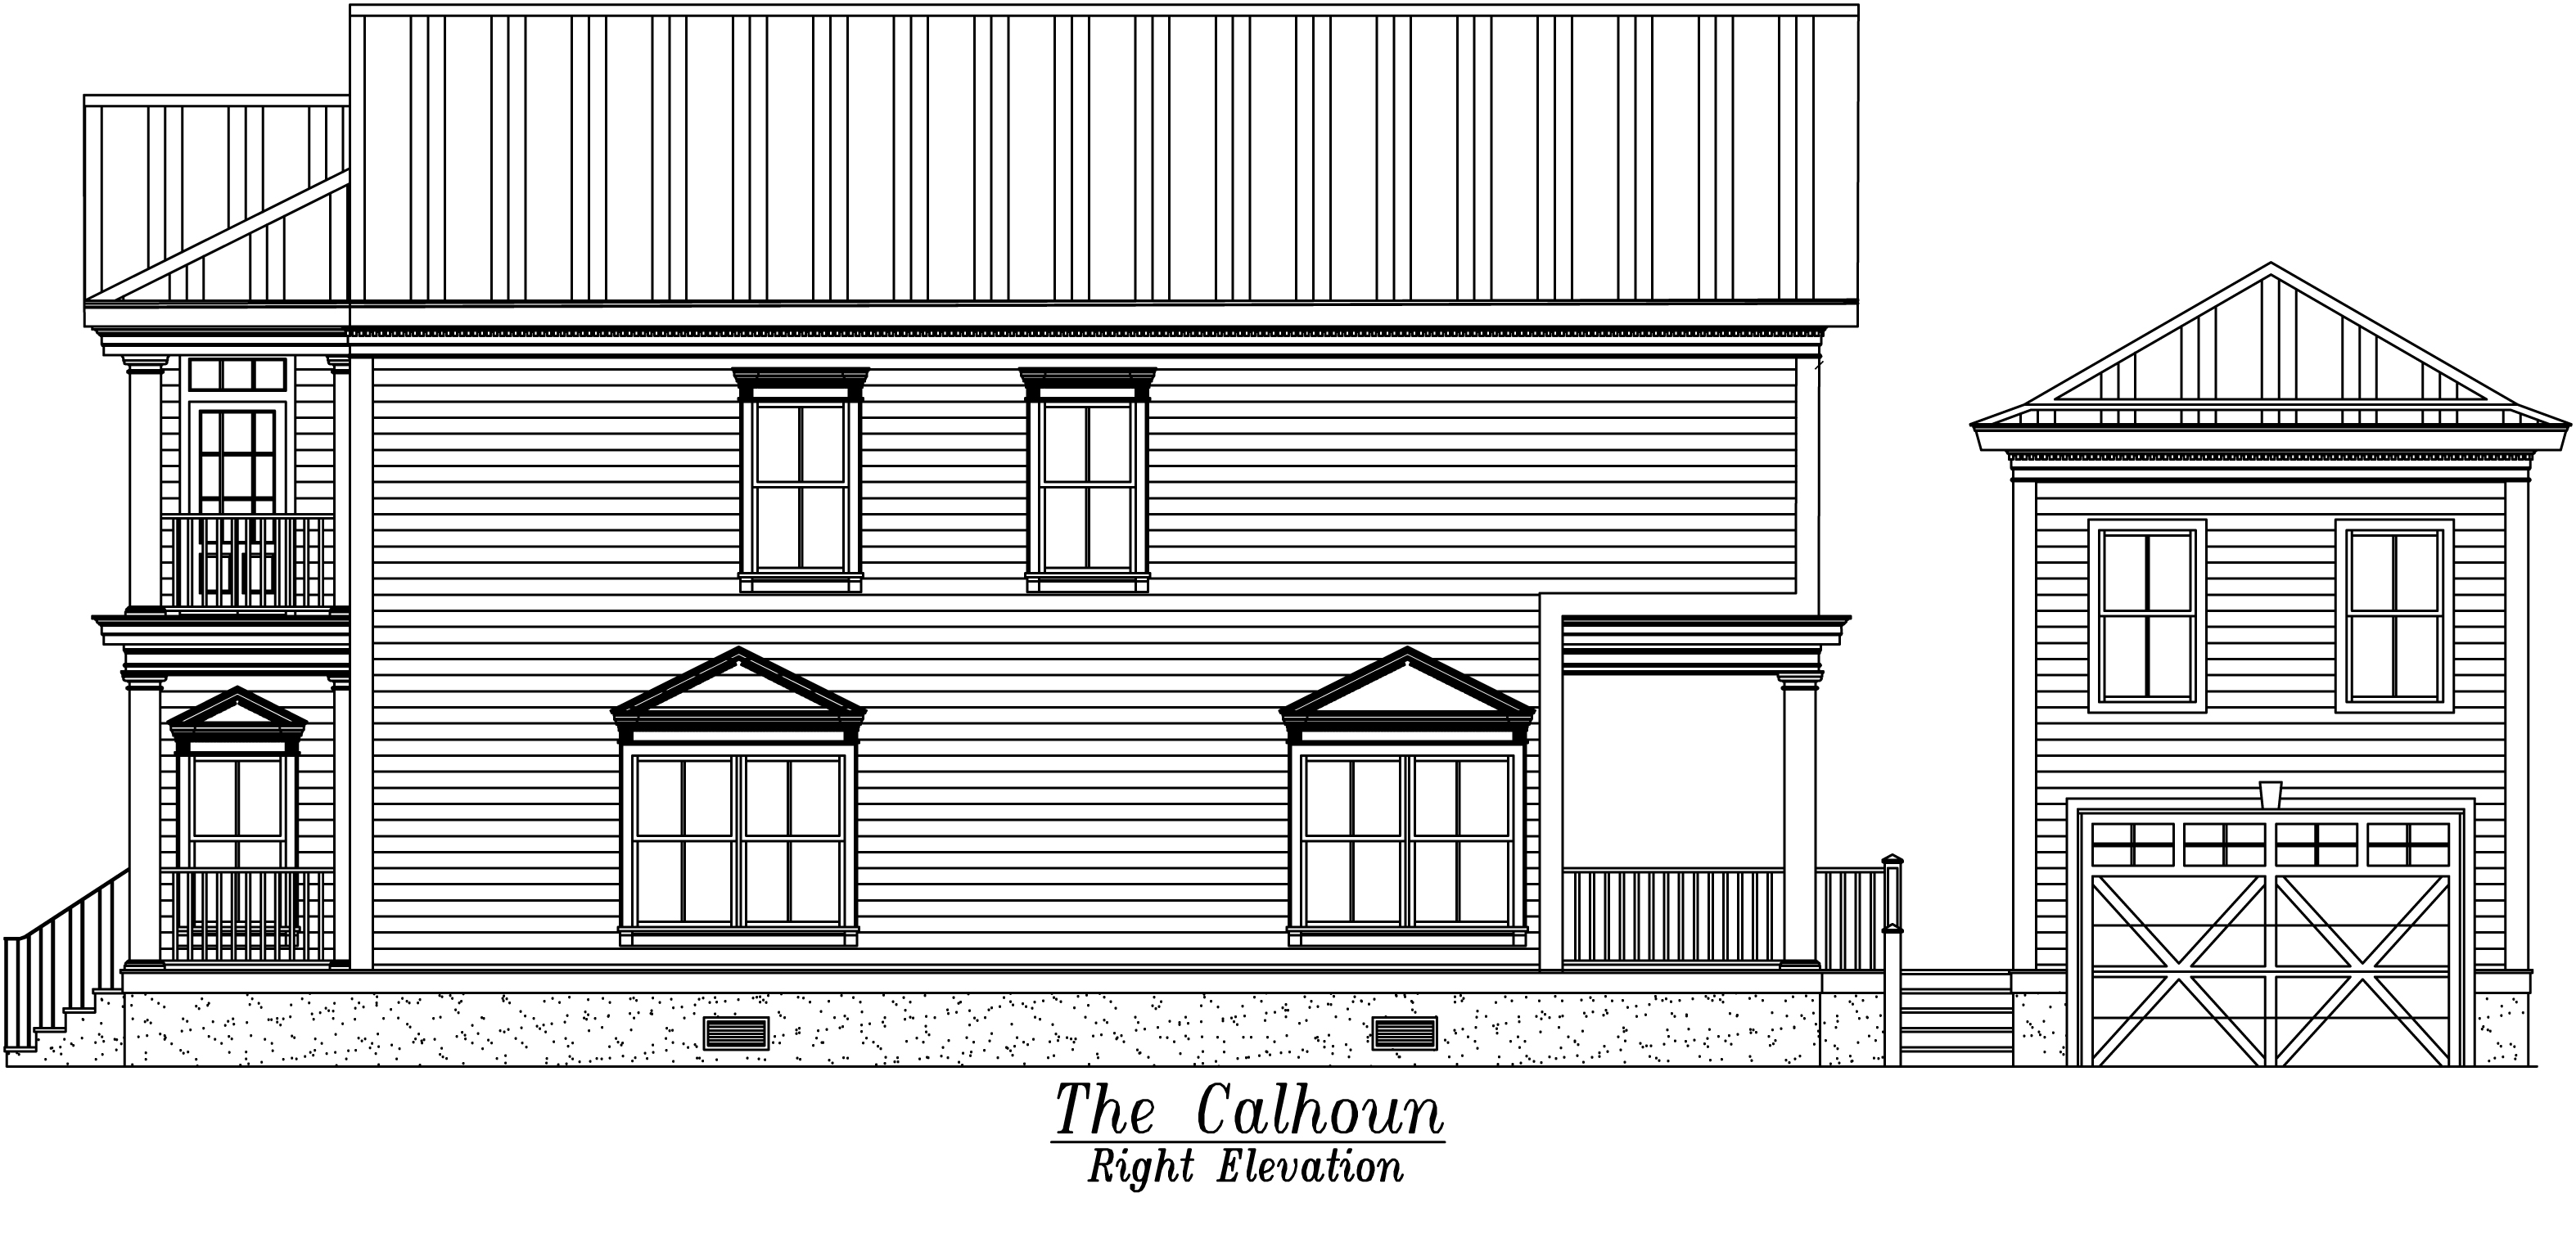 Calhoun Right Elevation